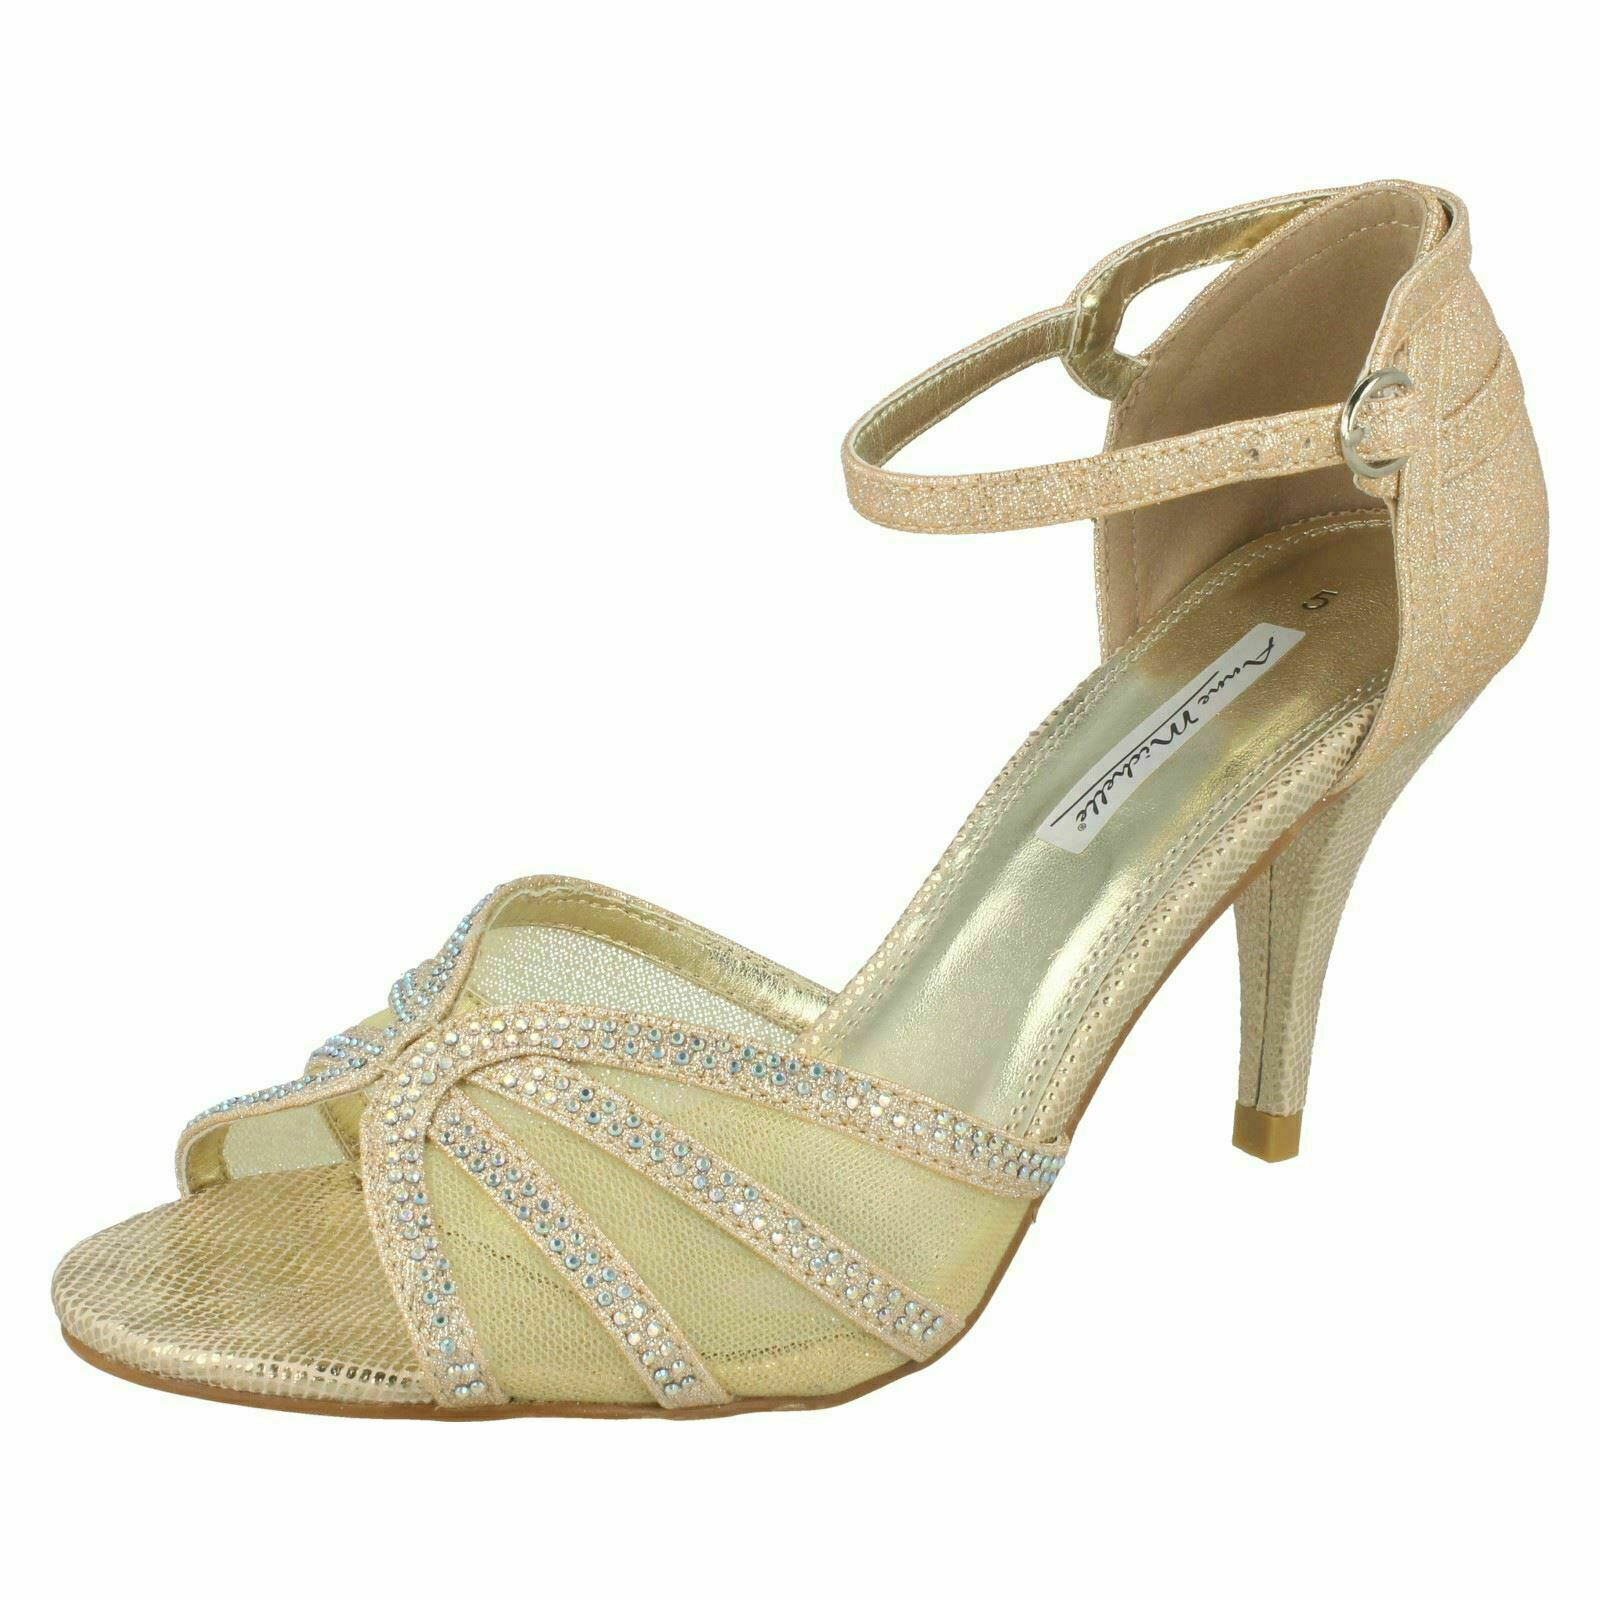 Ladies Anne Michelle Gold Glitzy Heeled Sandals Open Toe Shoes : Downtown